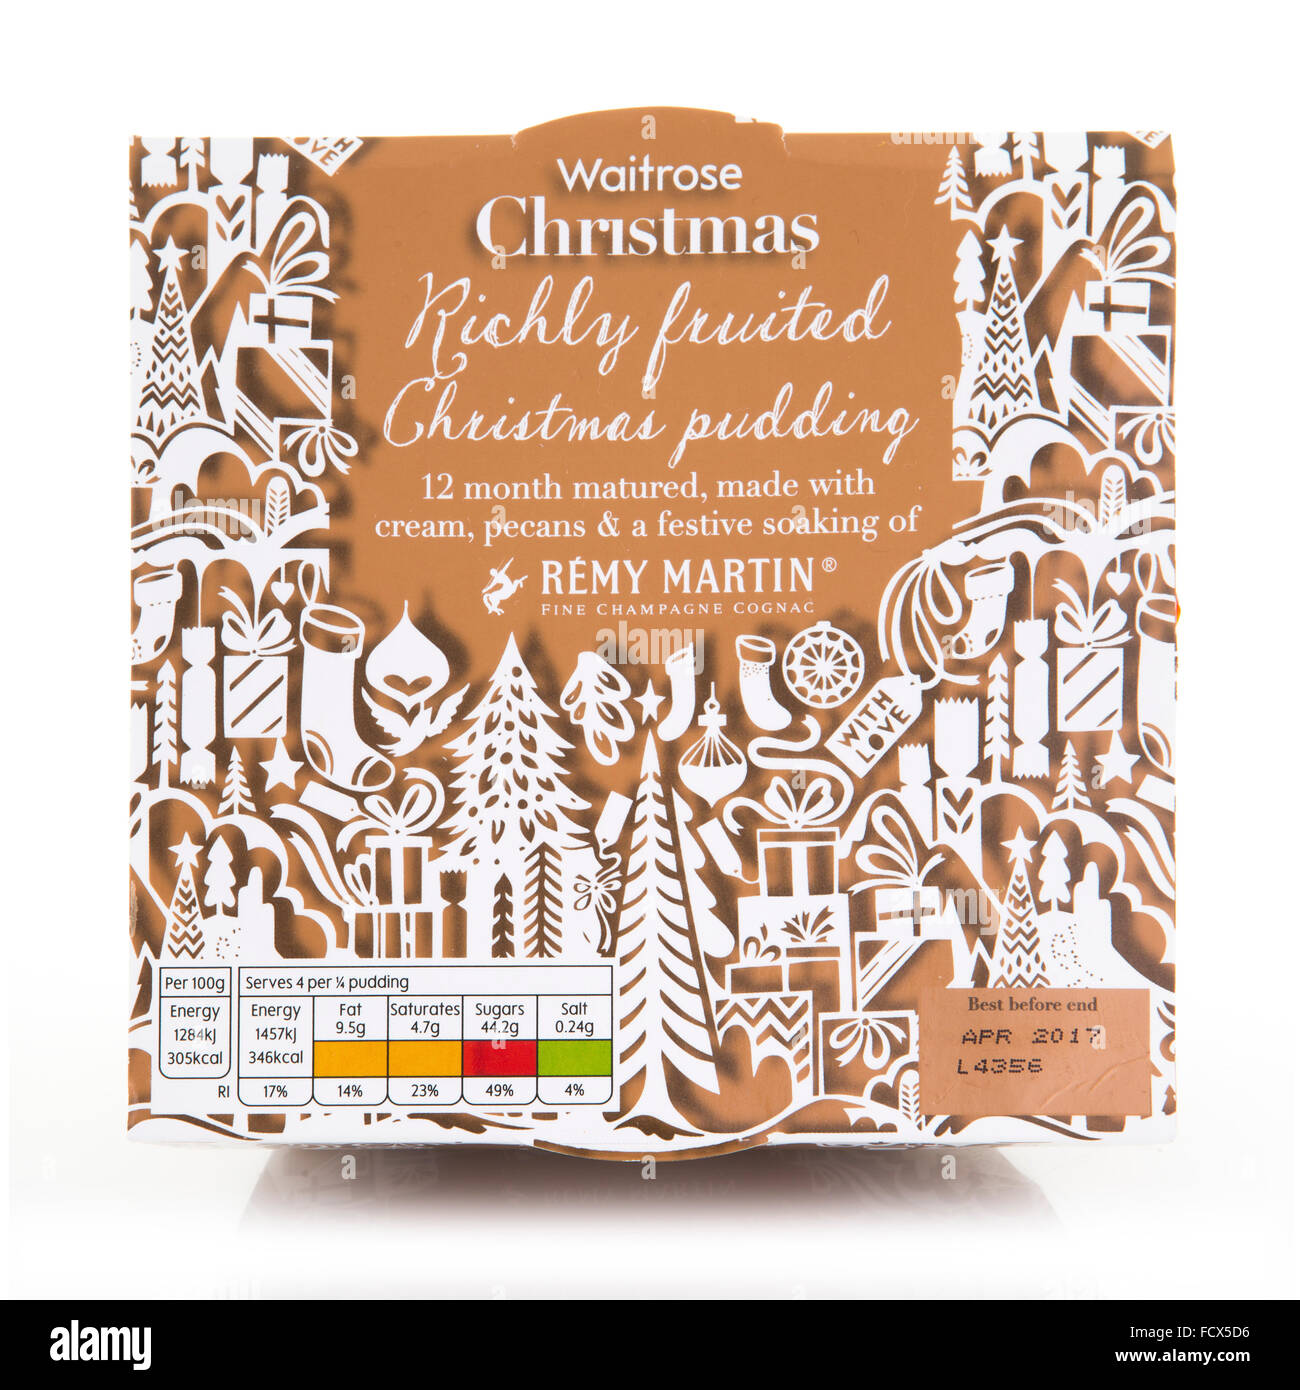 Waitrose Richly Fruited Christmas Pudding with Cream, Pecans and a Festive Soaking of Remy Martin - Stock Image